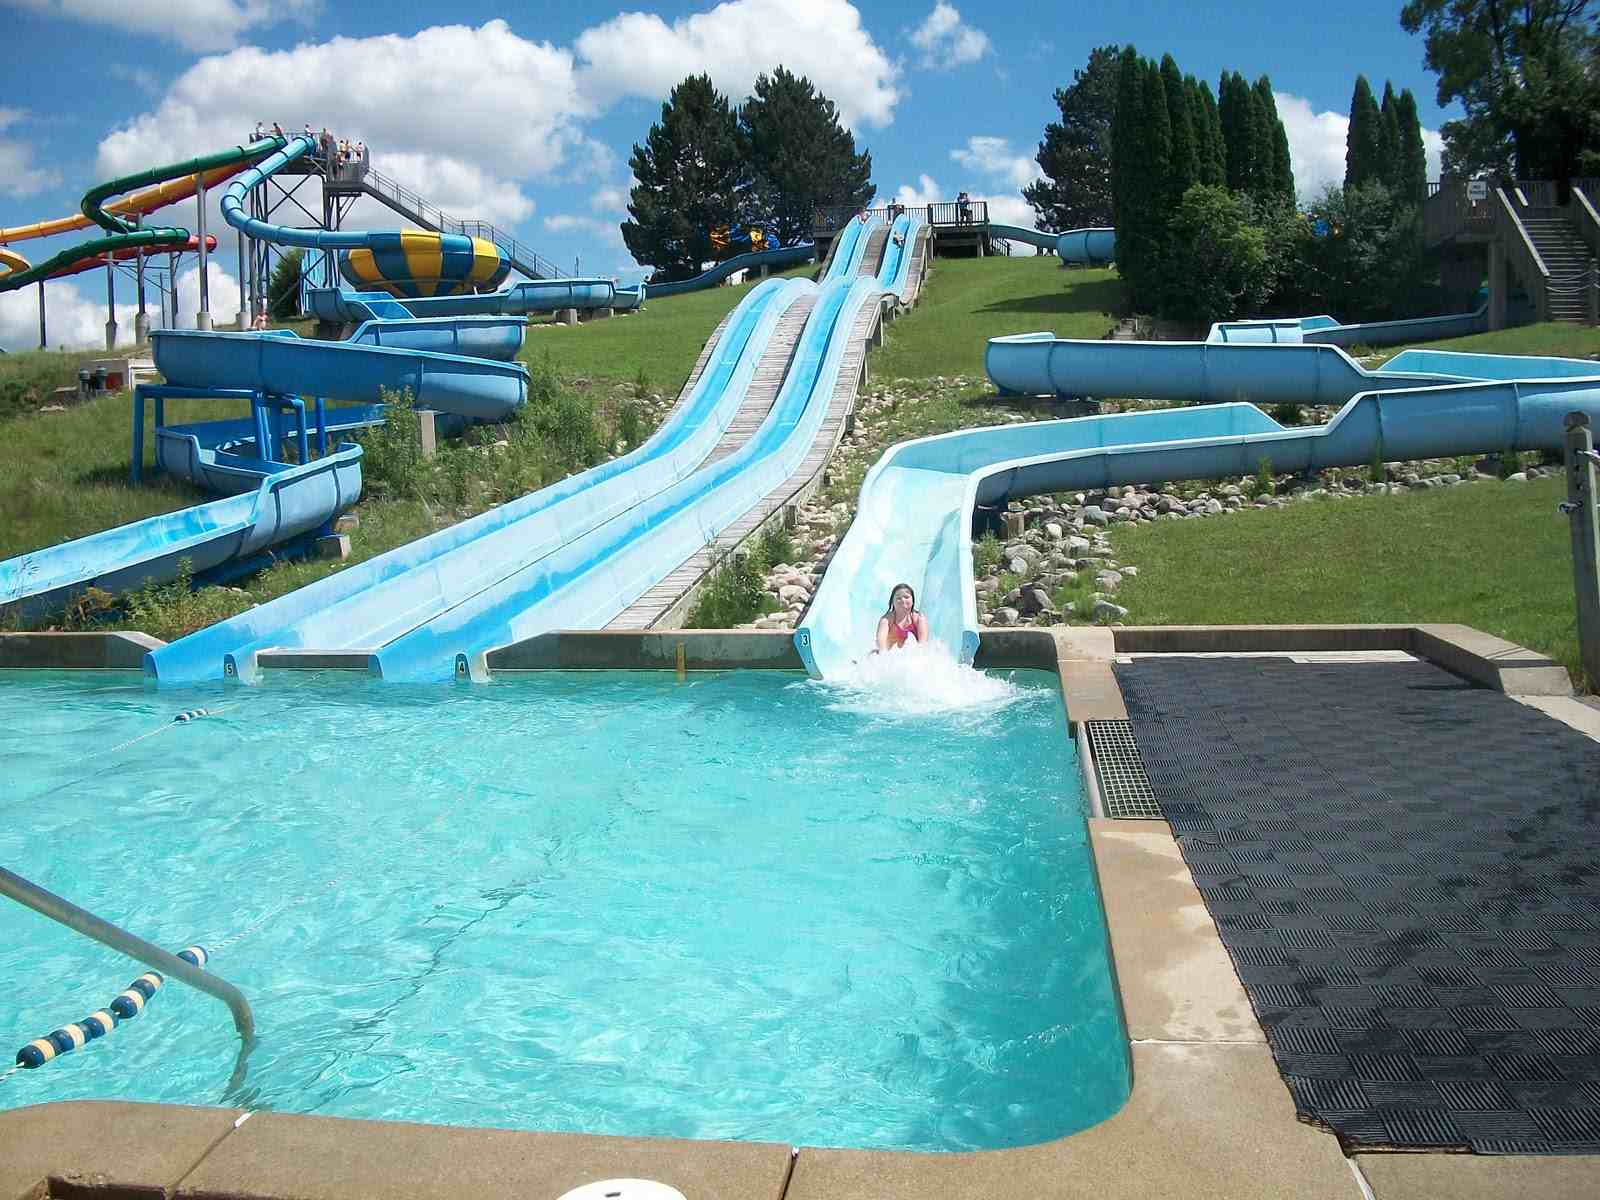 Bingemans is a park in Kitchener/Waterloo, Ontario, featuring an array of activities aimed especially at kids under 15.